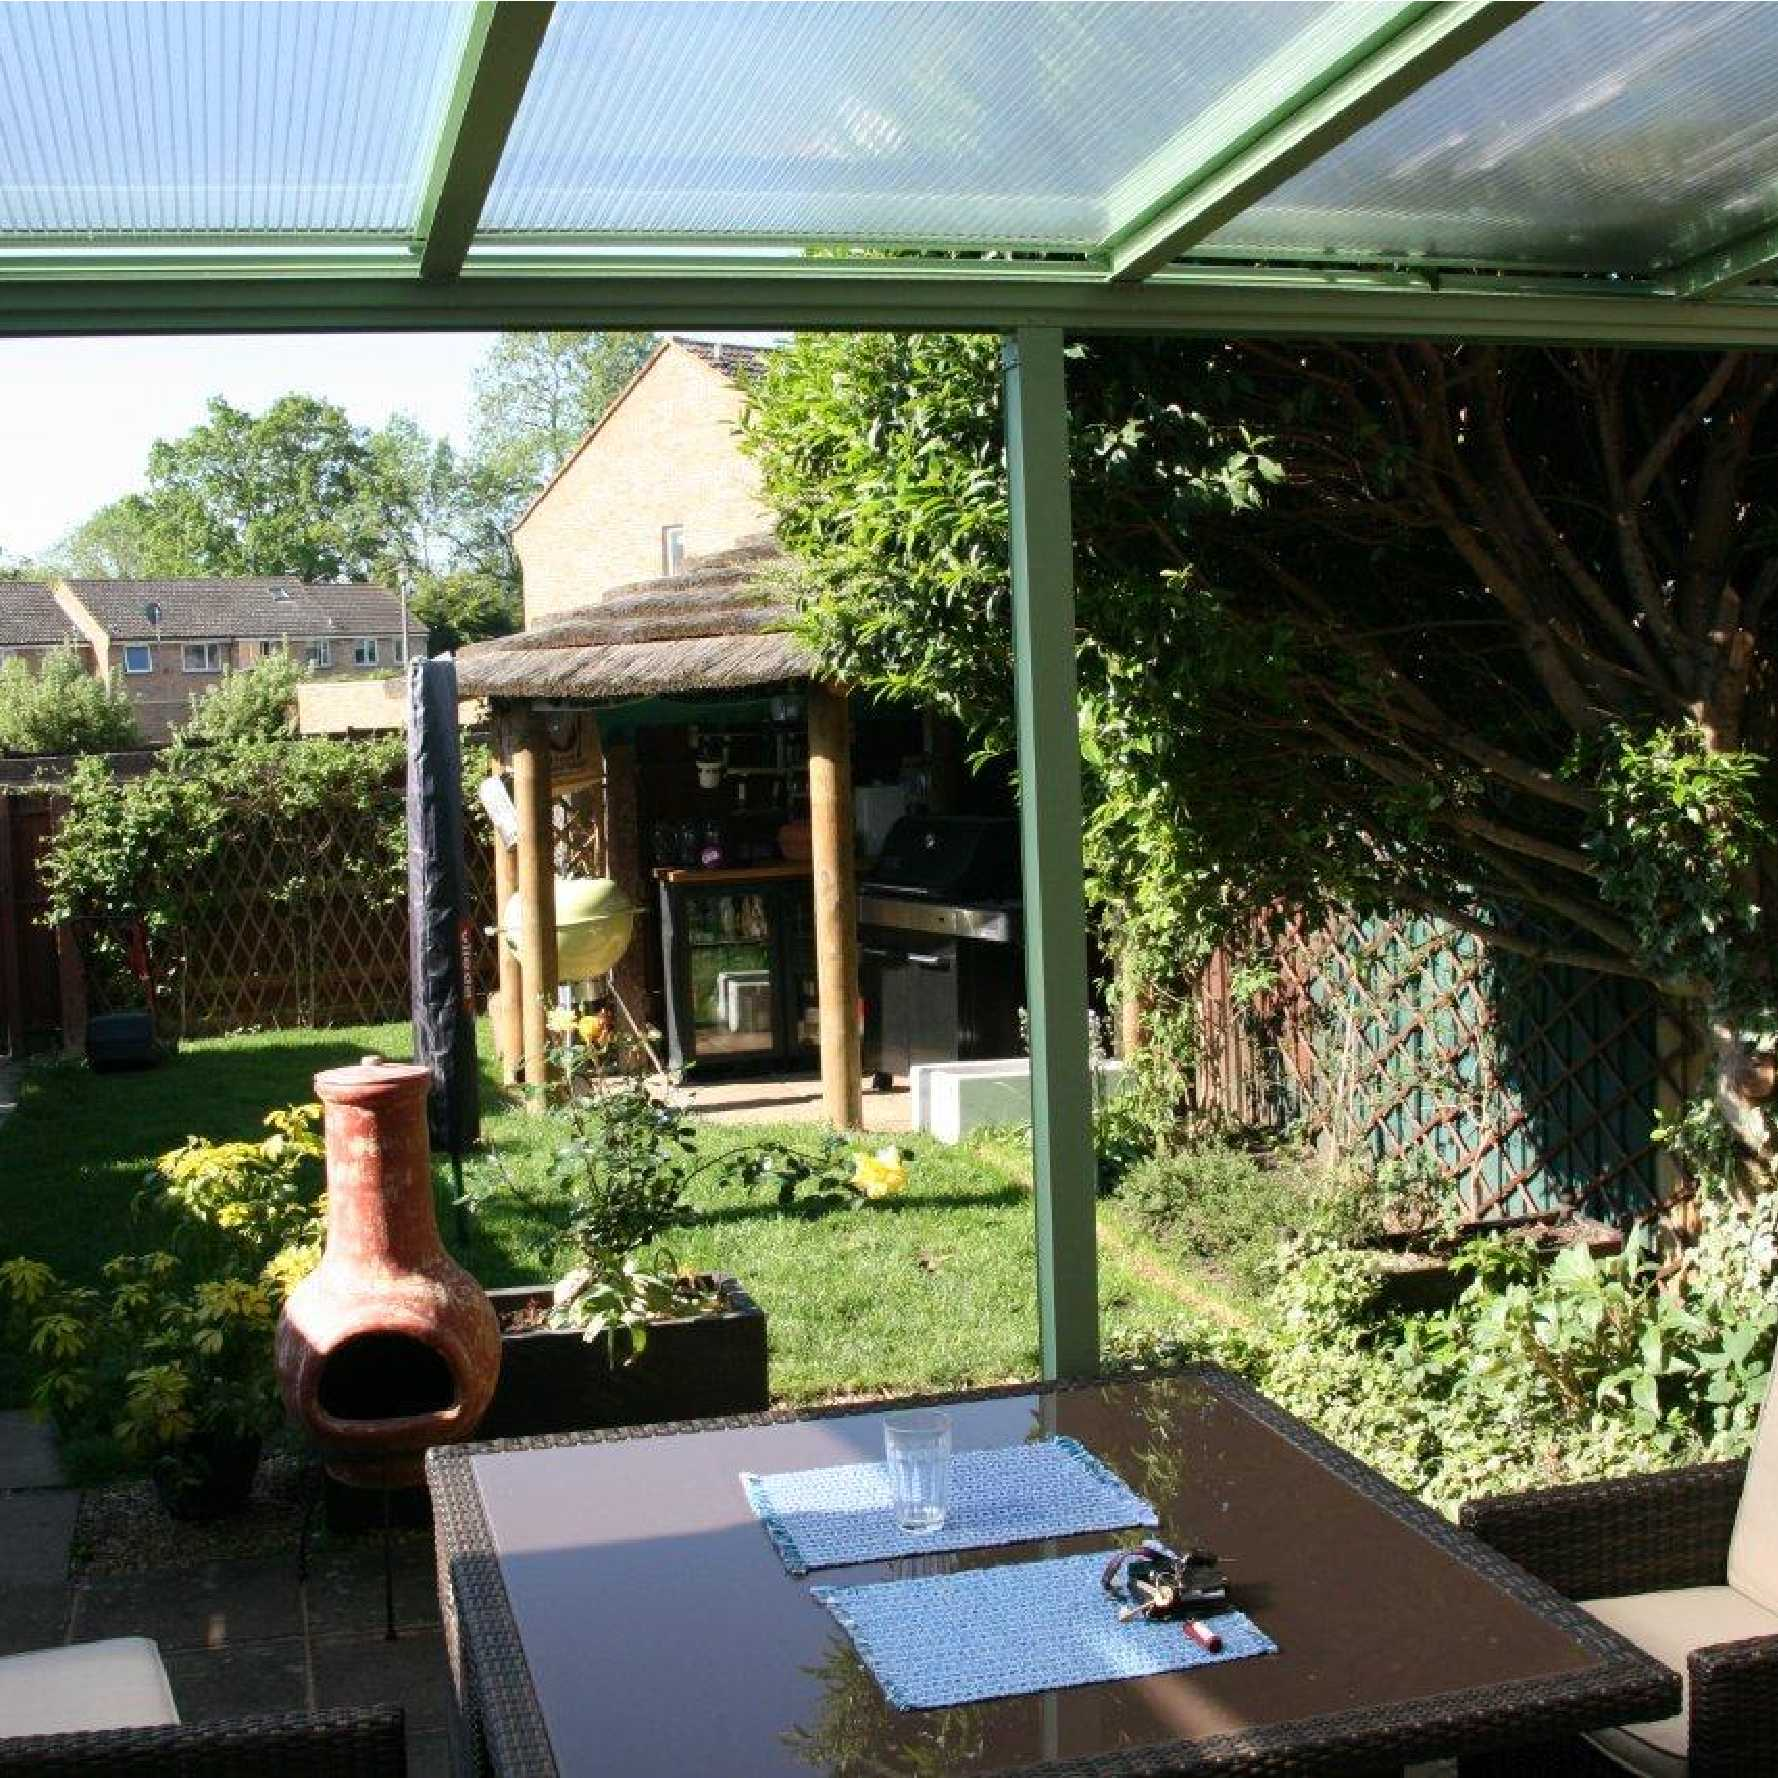 Affordable Omega Smart White Lean-To Canopy with 16mm Polycarbonate Glazing - 10.2m (W) x 4.5m (P), (5) Supporting Posts